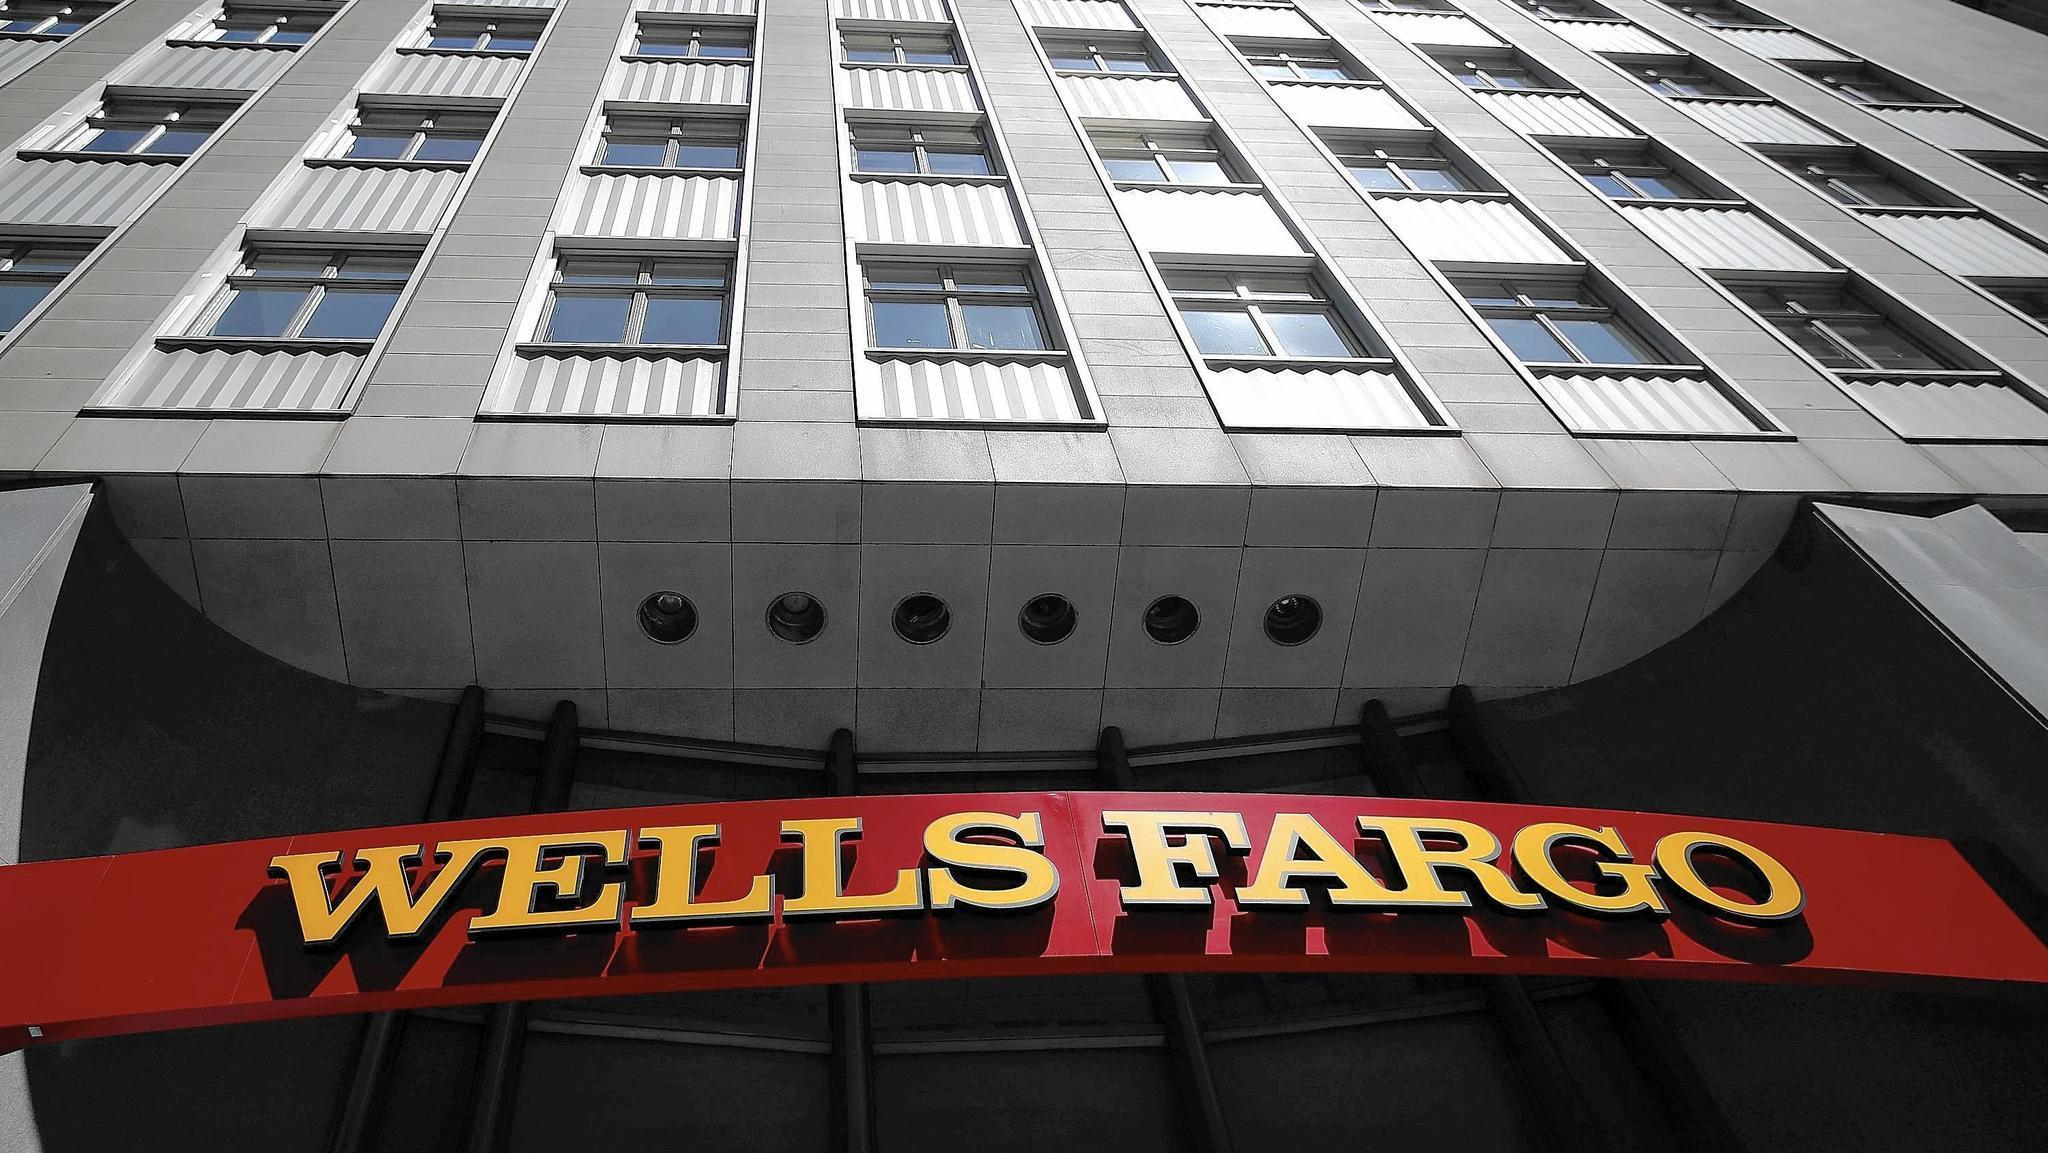 Timeline: How the Wells Fargo scandals unfolded - Lehigh Valley ...